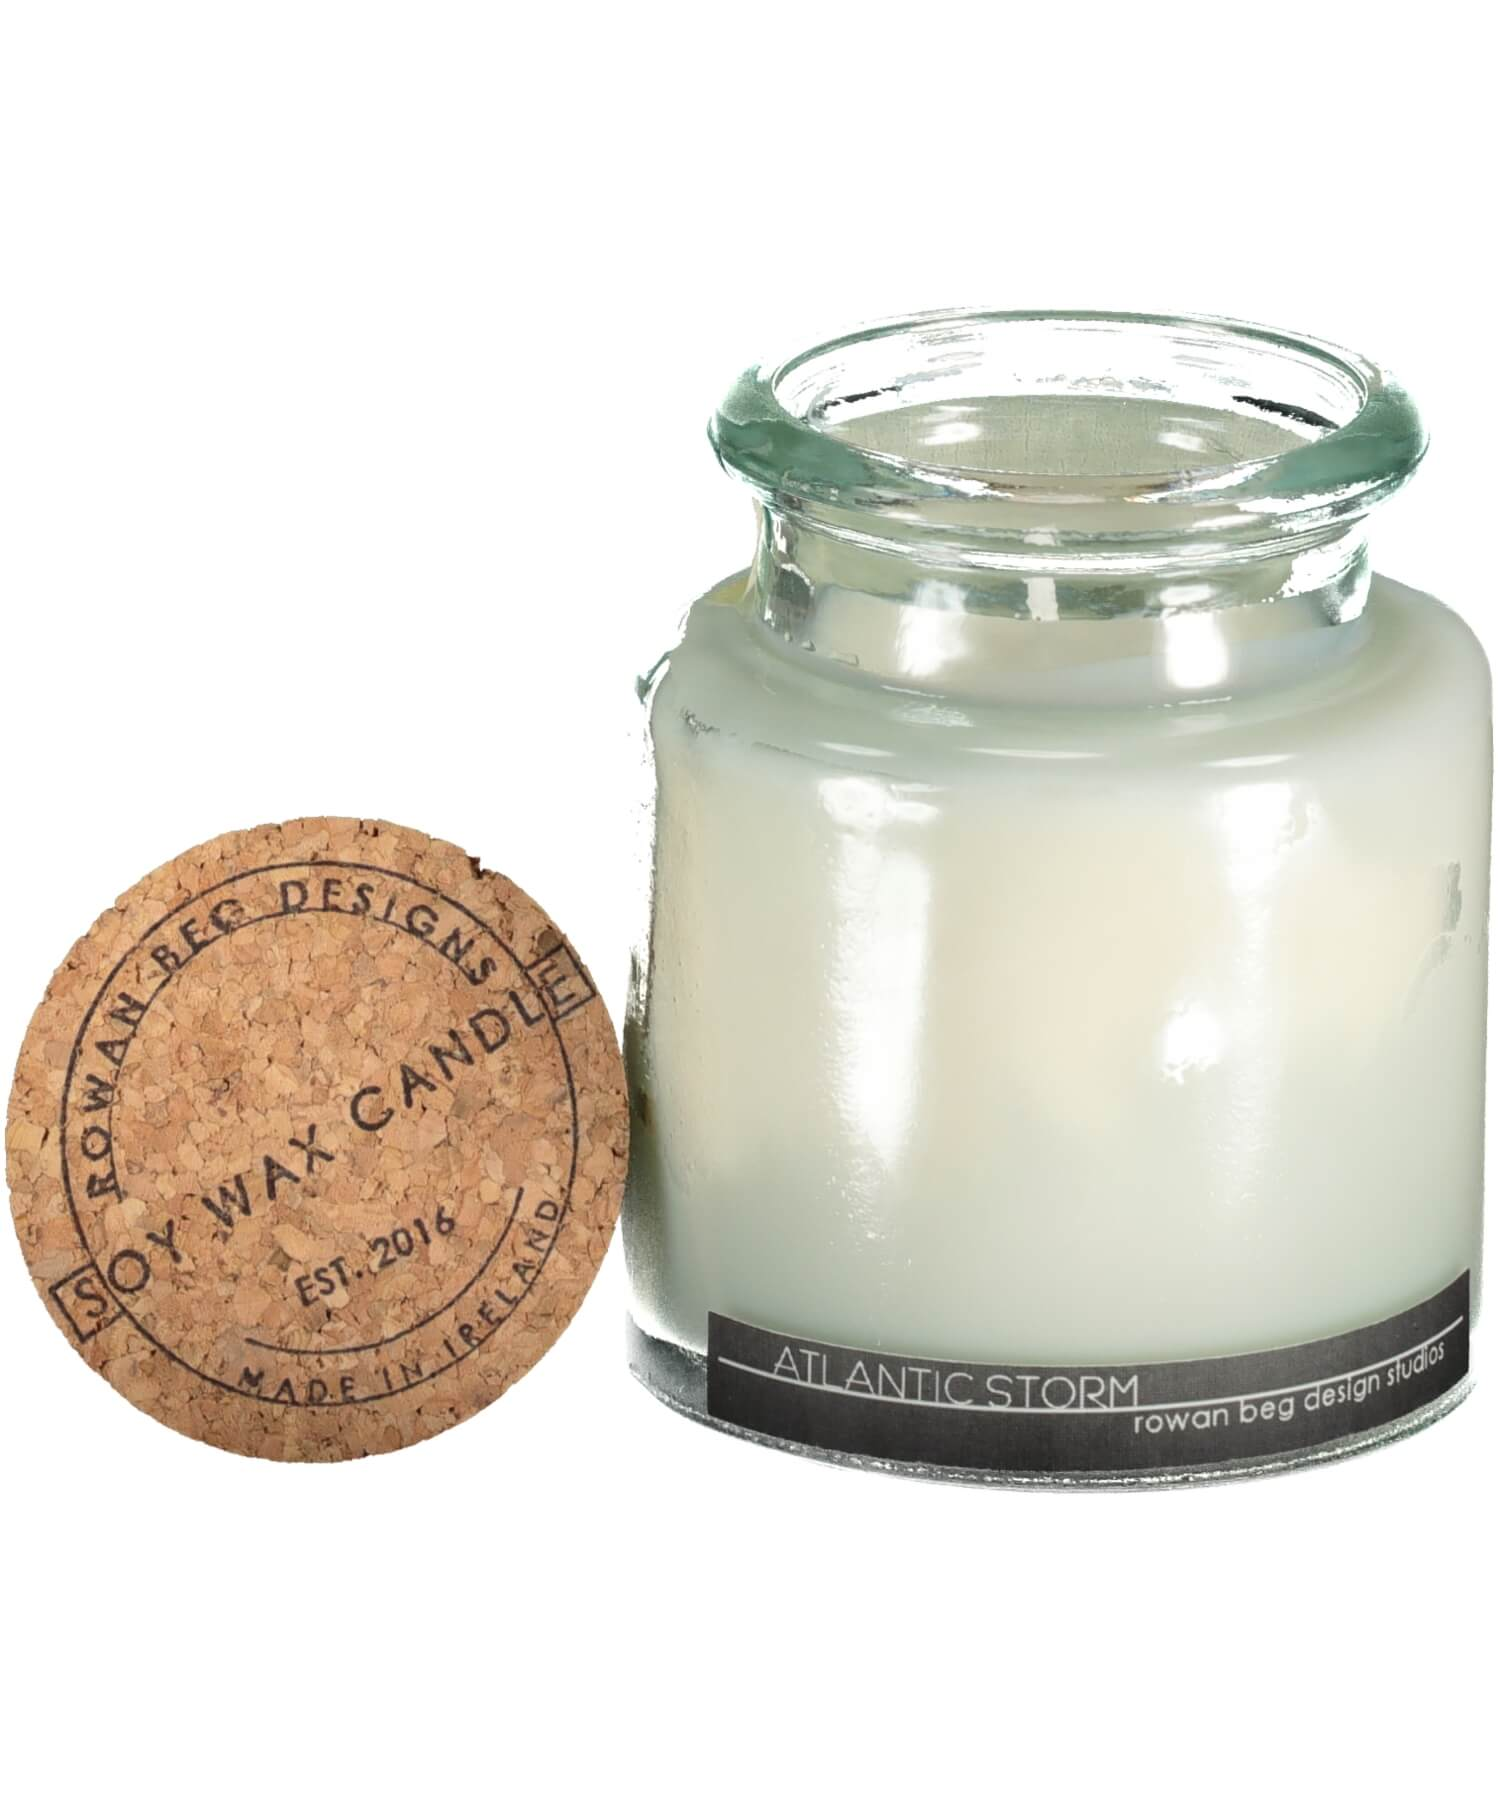 Classic Candle - Wild Atlantic Storm - [Rowan Beg] - Home Fragrance - Irish Gifts